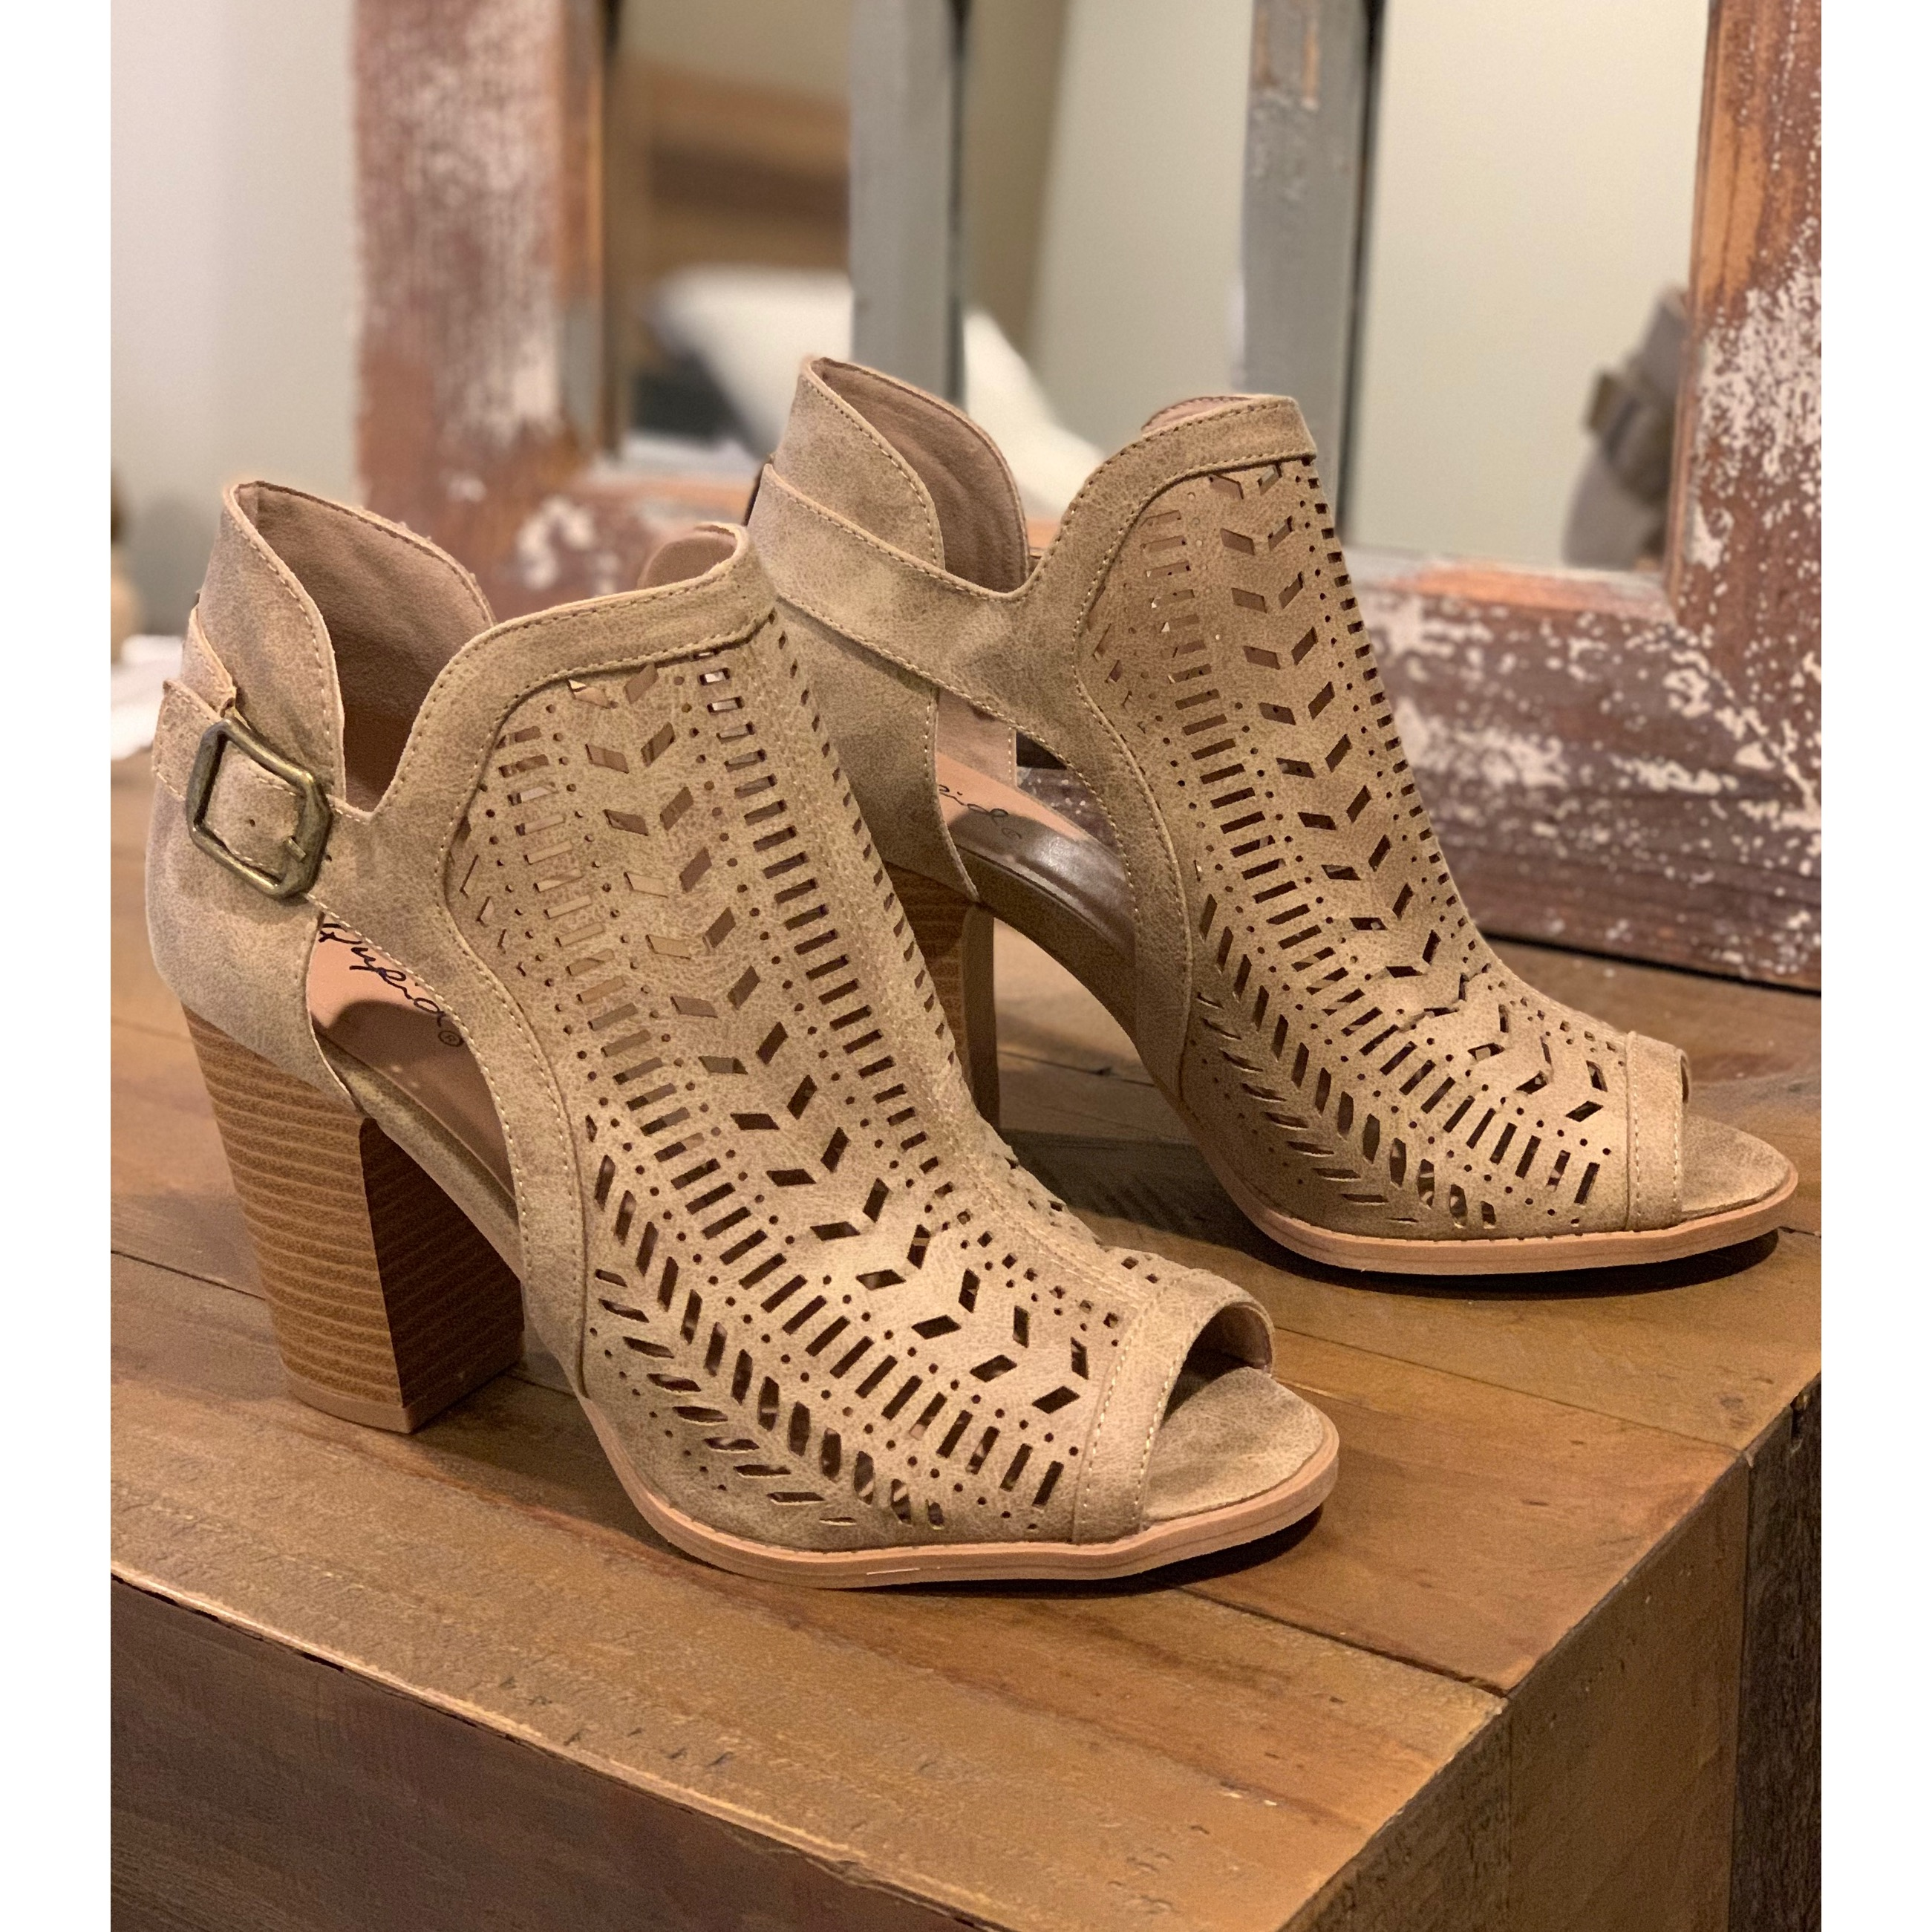 66cc0a44331 Eve Peep Toe Booties - Distressed Taupe from Blooming Lily Boutique